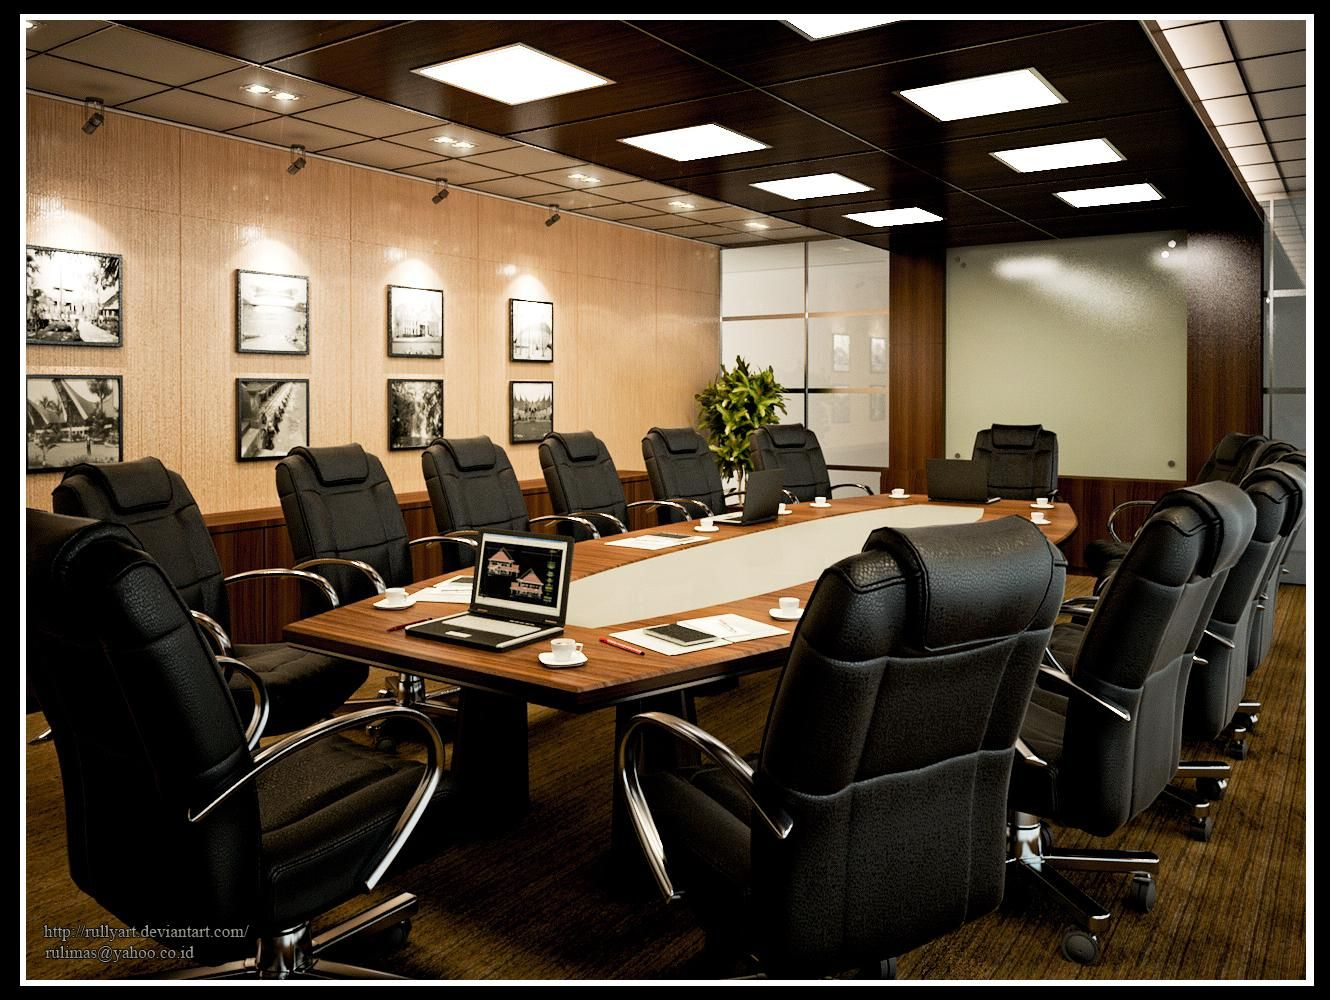 Interior design for meeting room by rullyart ideas for for Meeting room interior design ideas